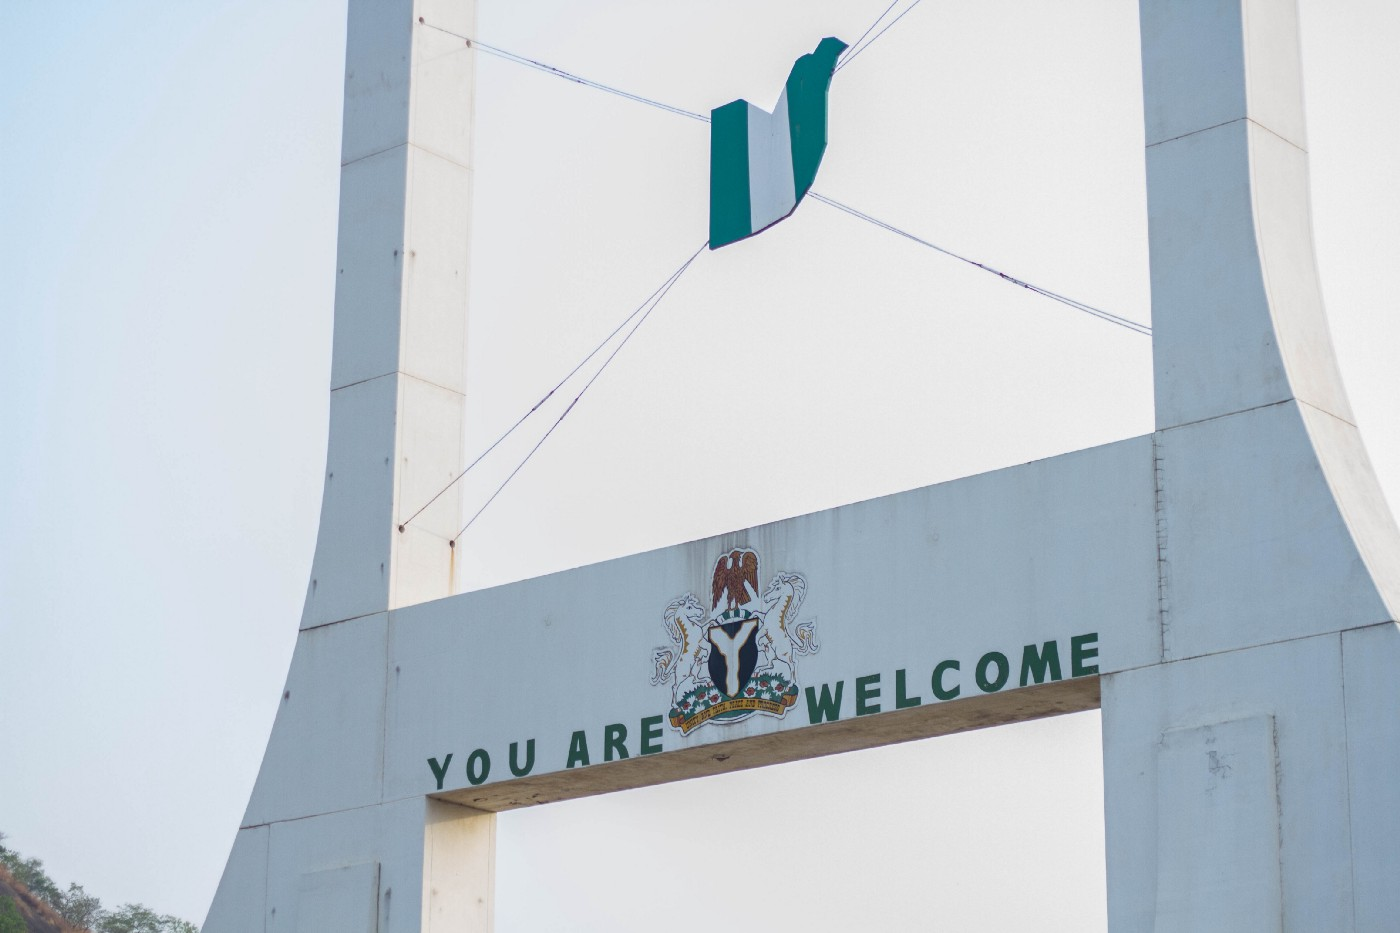 Located in the heartland of Africa's most populous country, the FCT projects a special ambience not found elsewhere in Nigeria.